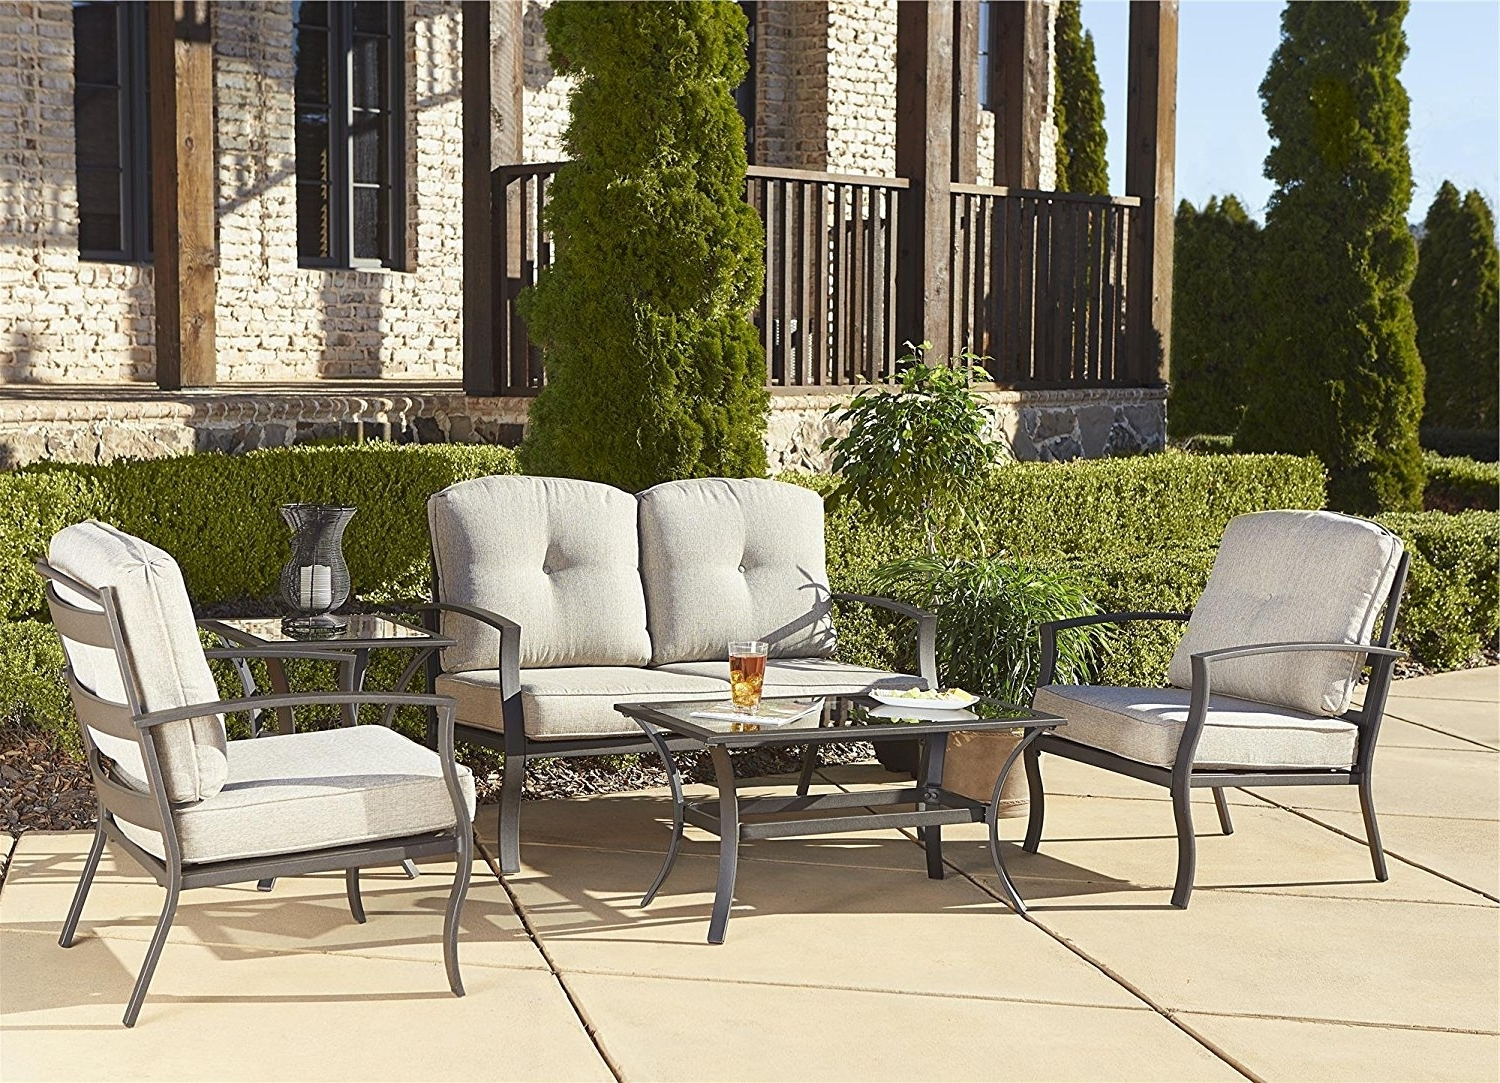 Big Lots Patio Furniture Target Patio Furniture Gas Fire Pit Chat Throughout Most Popular Patio Conversation Sets At Target (View 3 of 20)